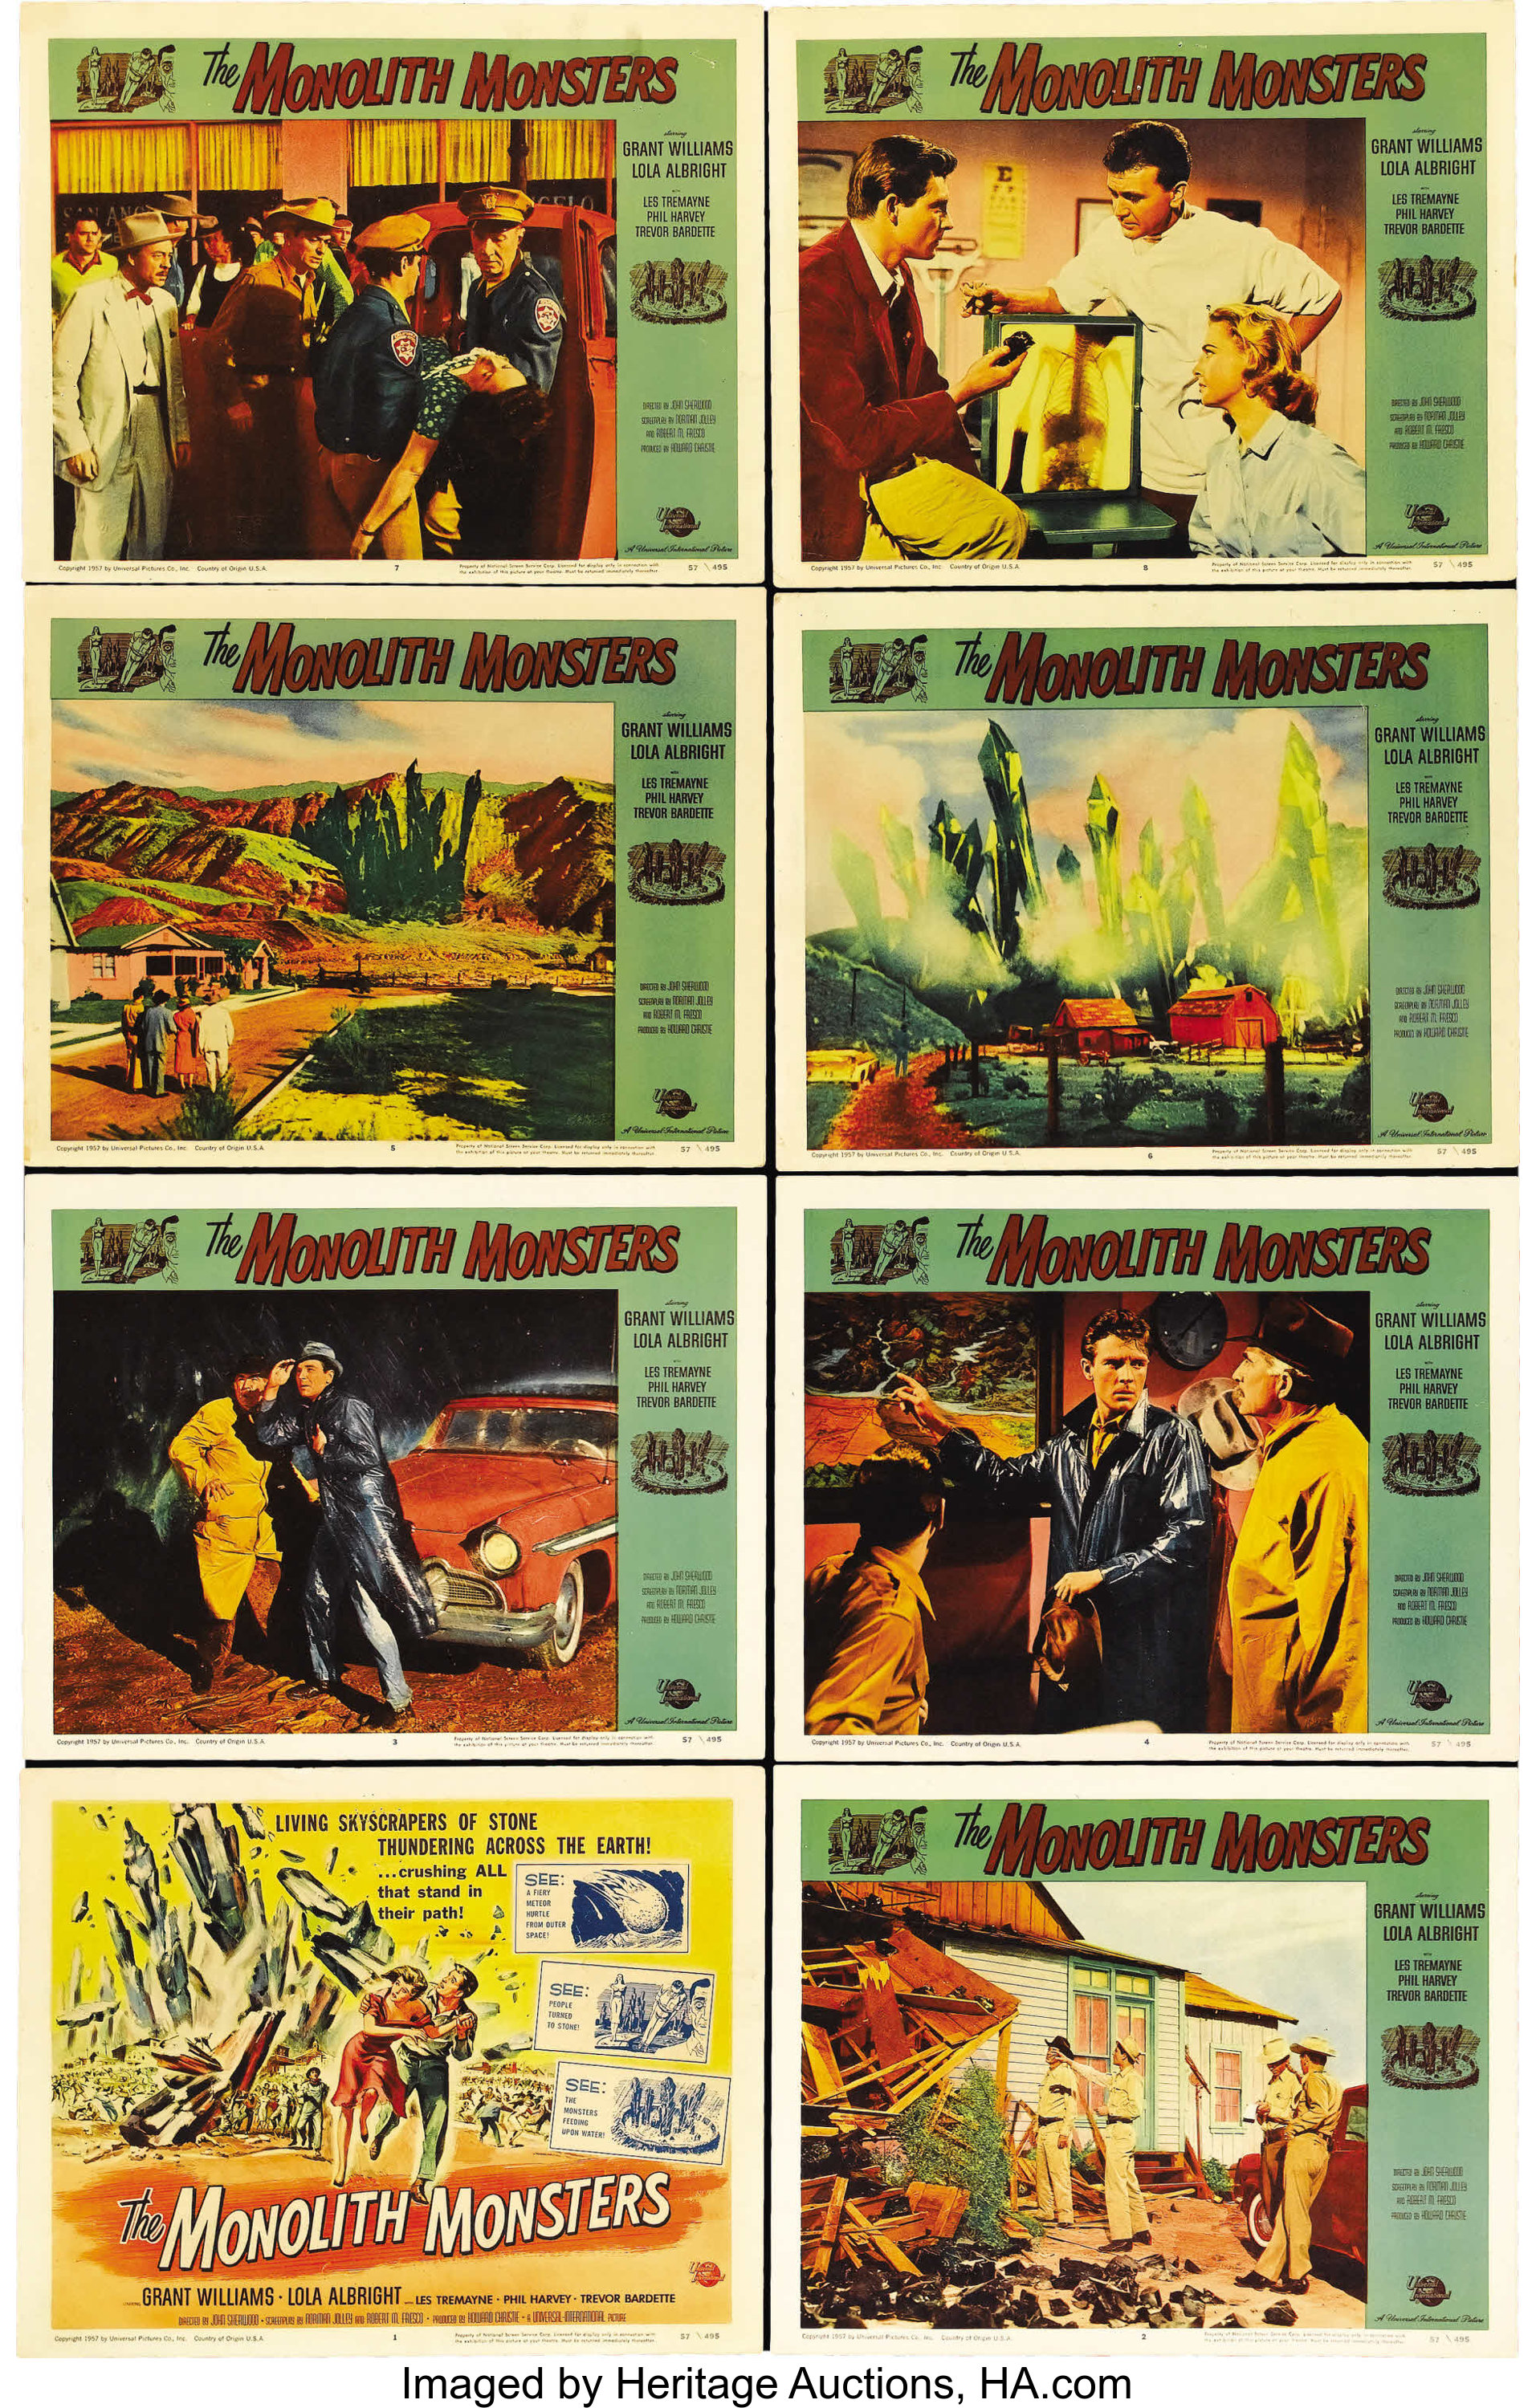 the monolith monsters universal international 1957 lobby card lot 28896 heritage auctions heritage auctions